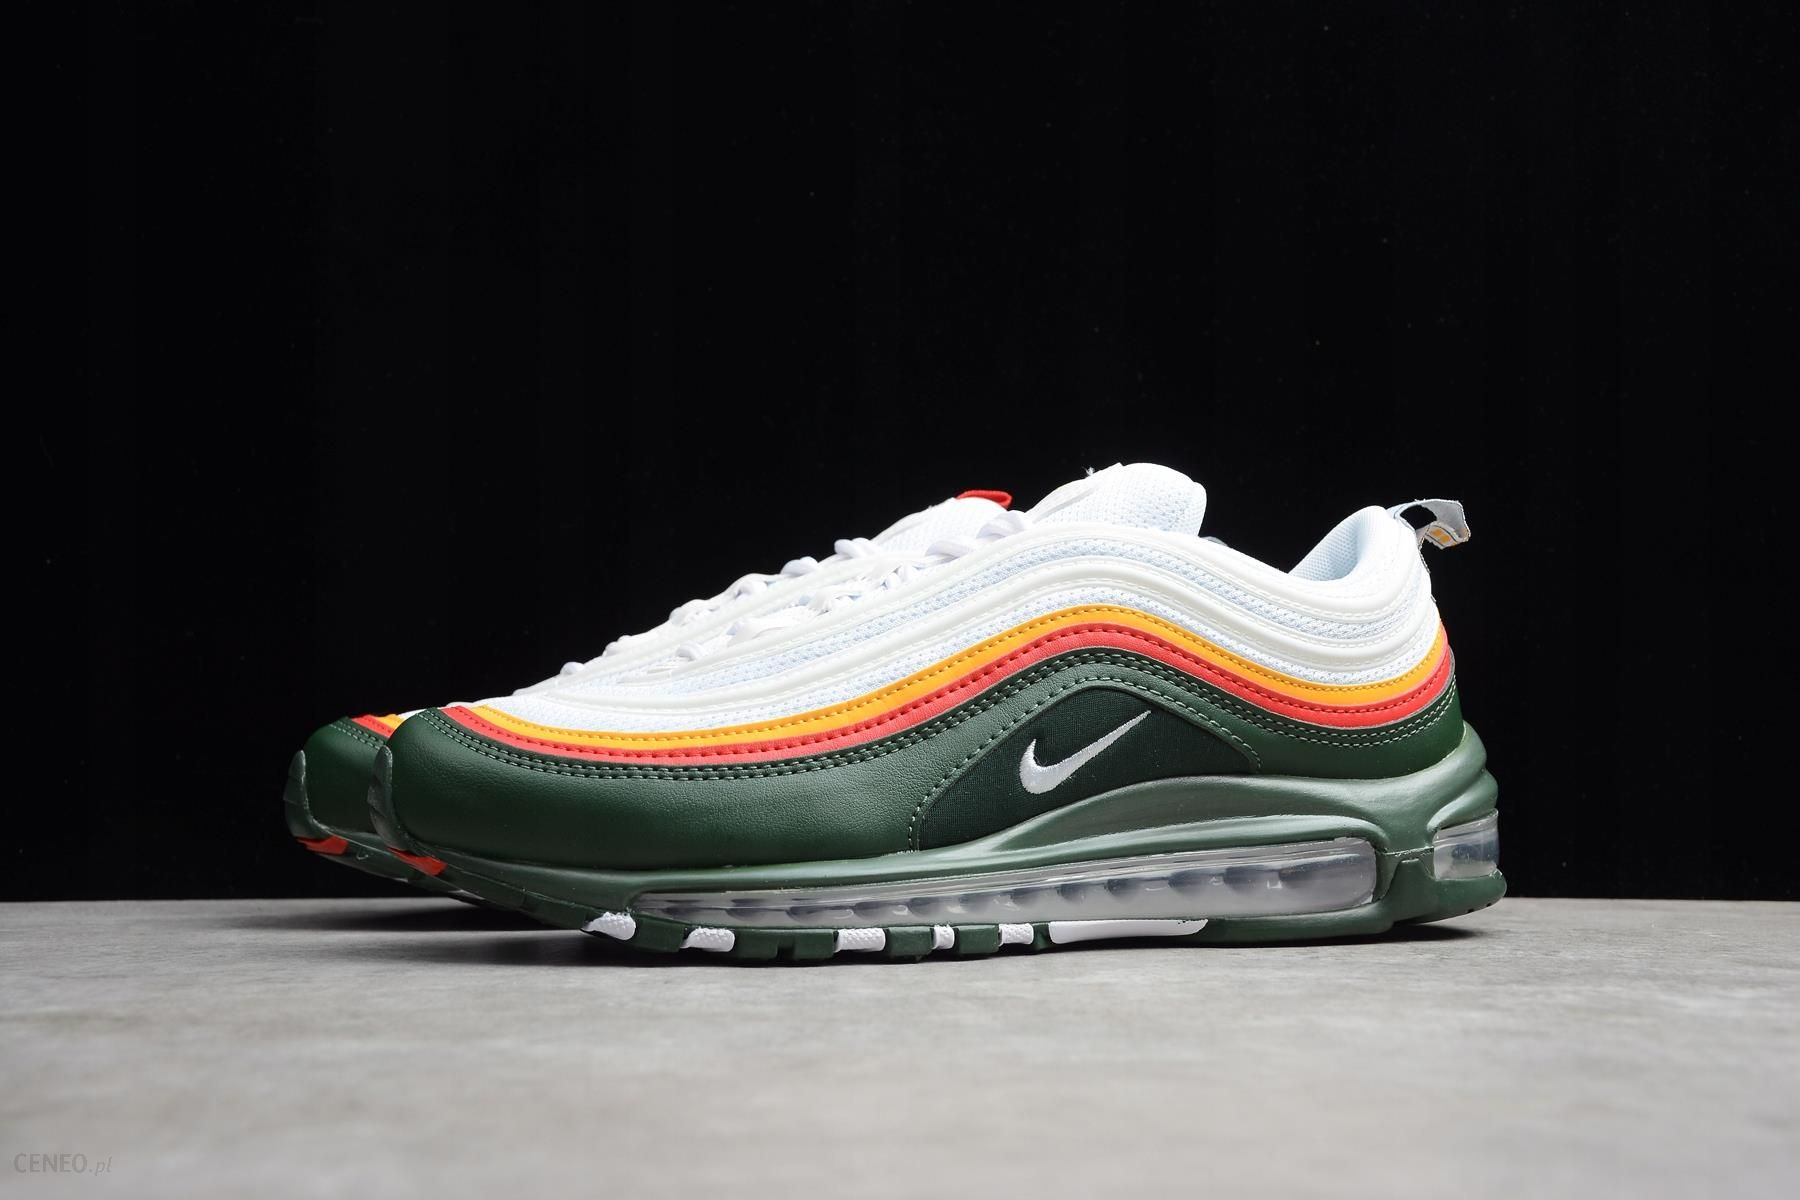 nike air max 97 yellow green